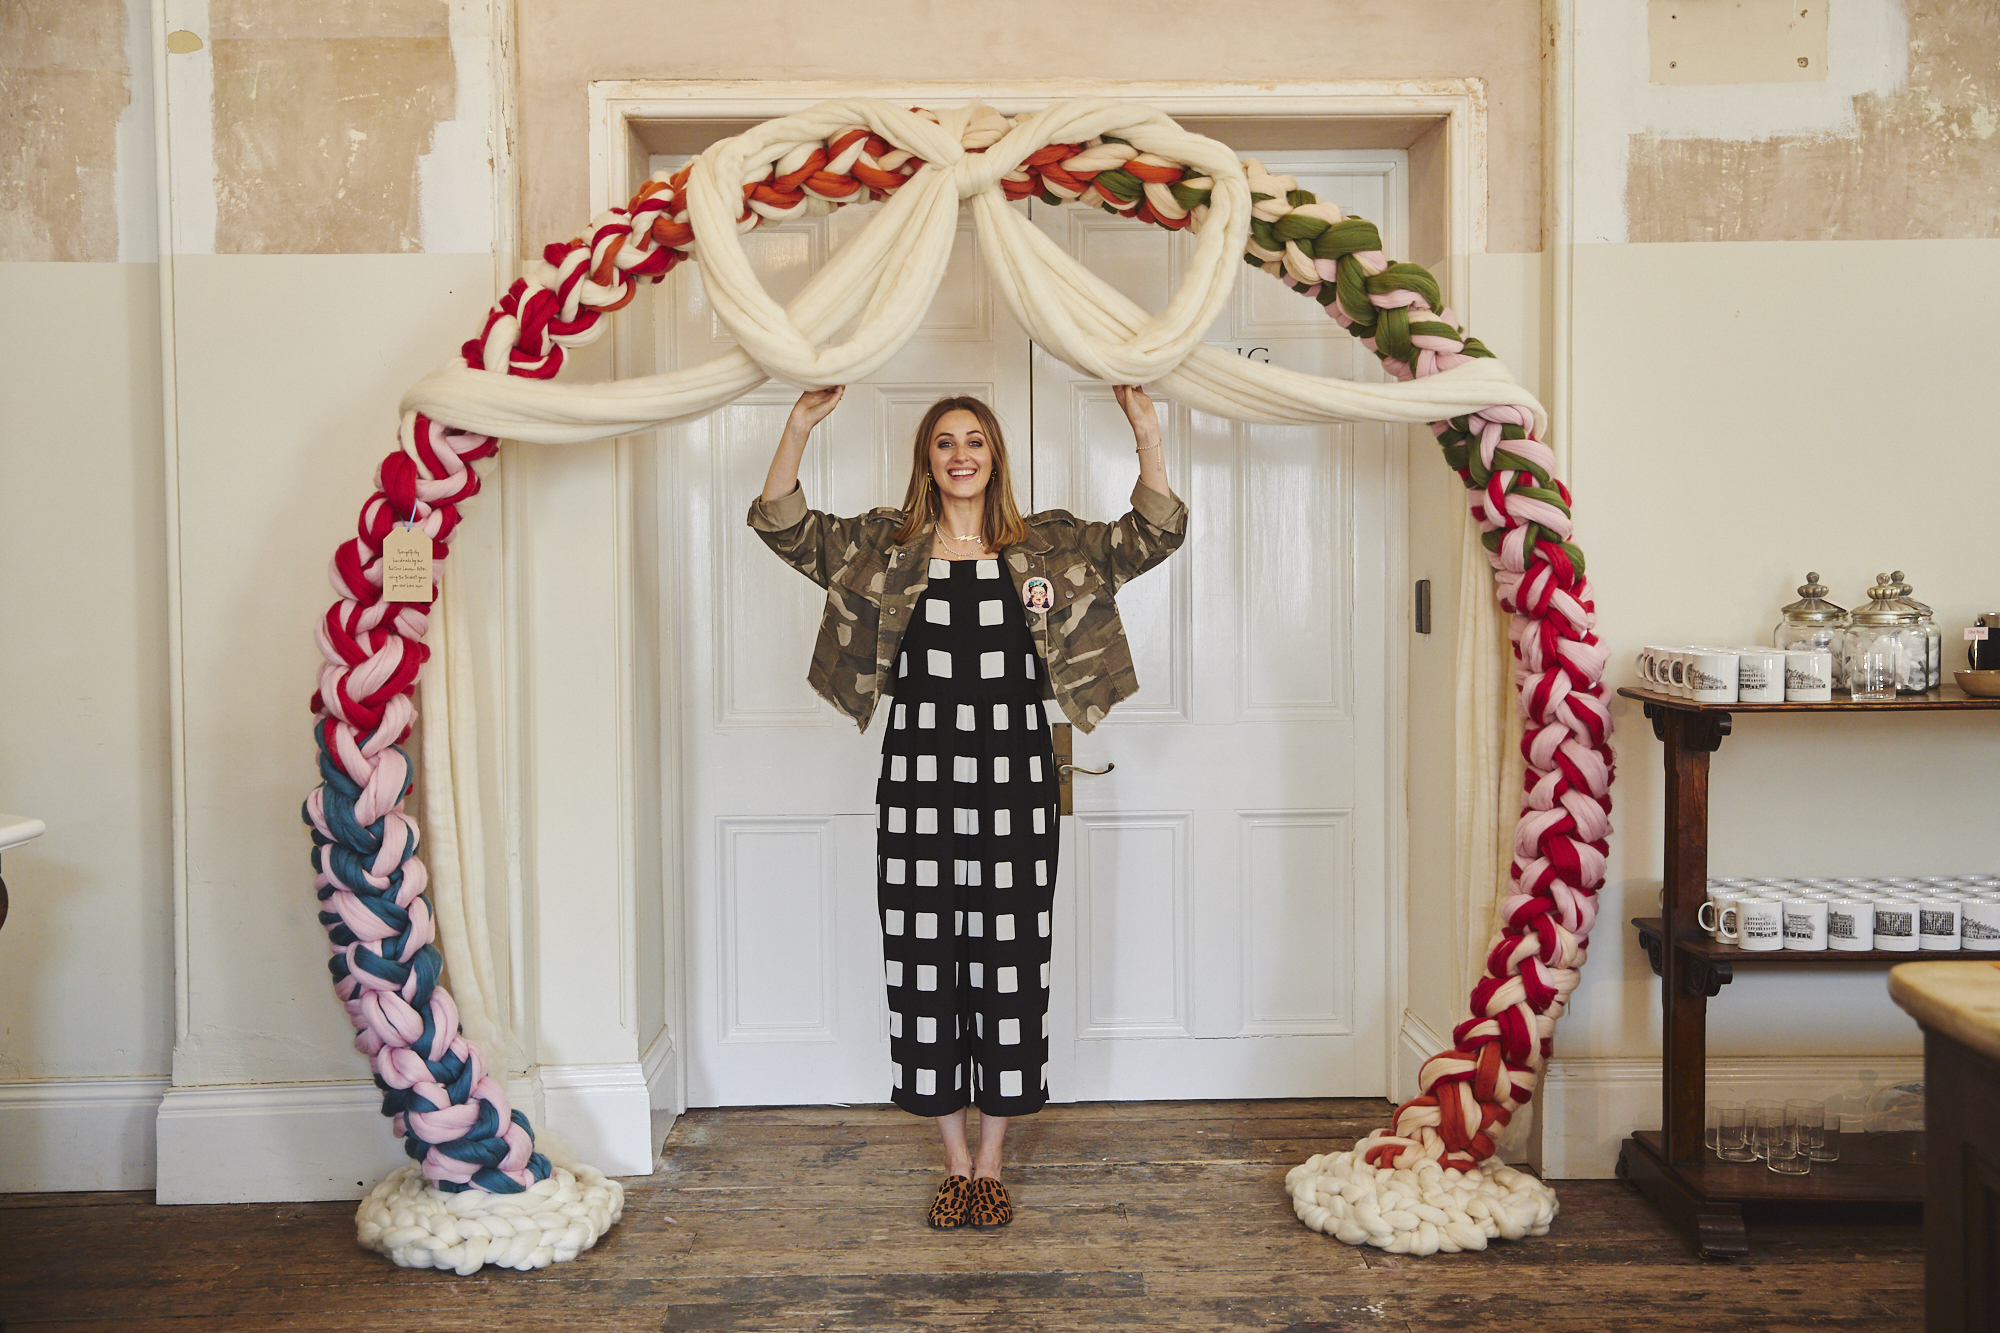 Photo by Sarah Brick who was photographing the event for Notonthehighstreet.com